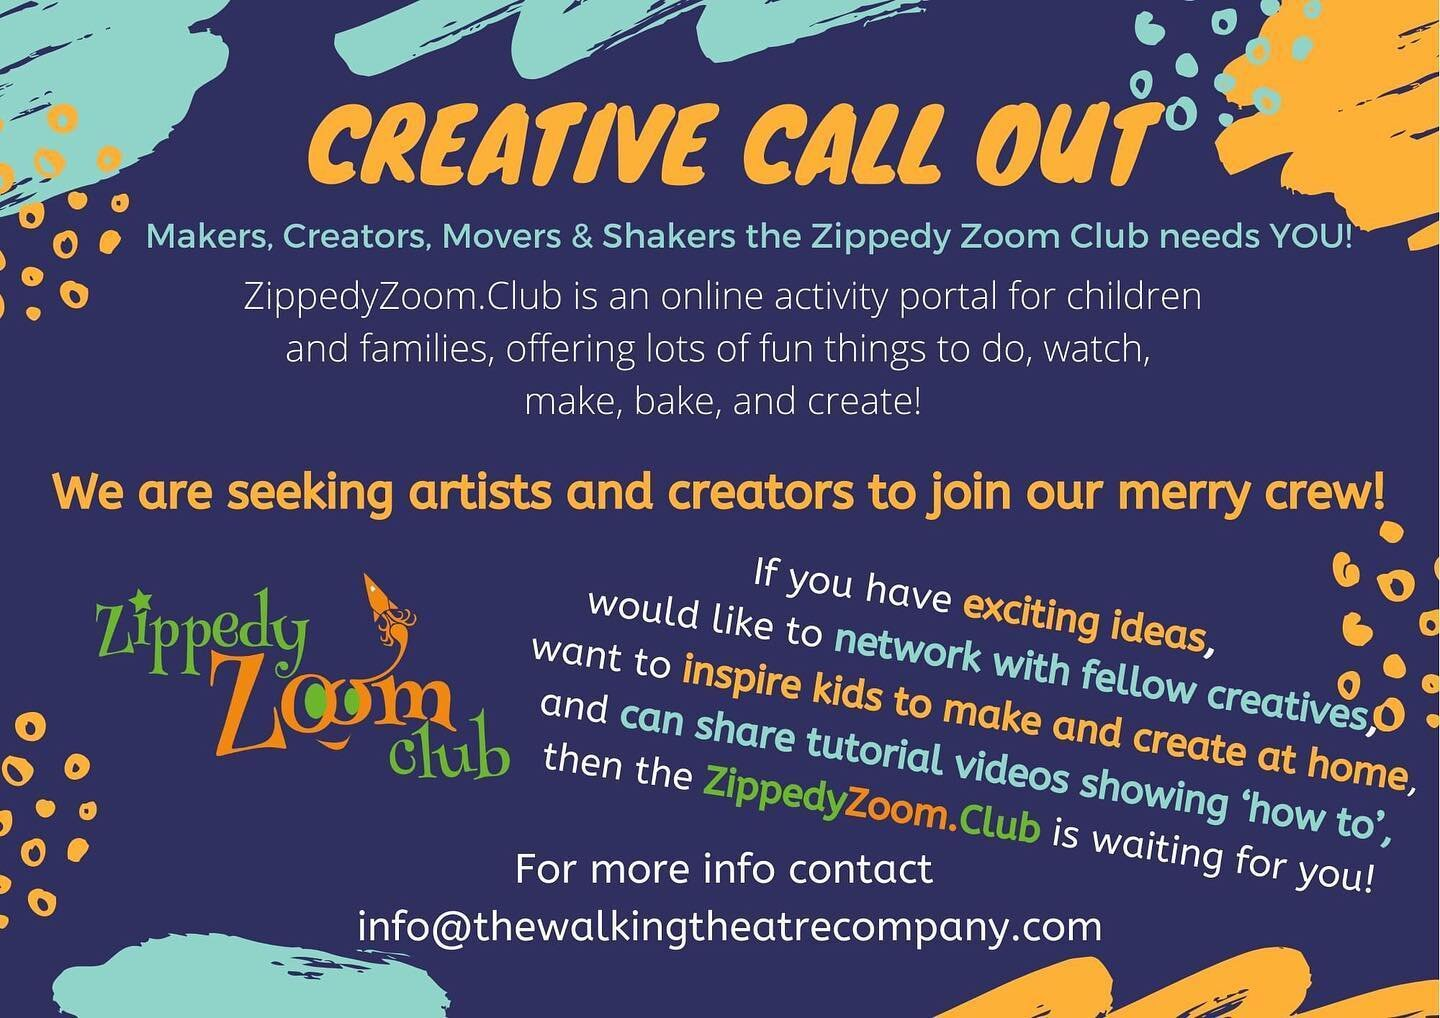 Join the fun of the ZippedyZoom.Club by becoming a maker or creator!